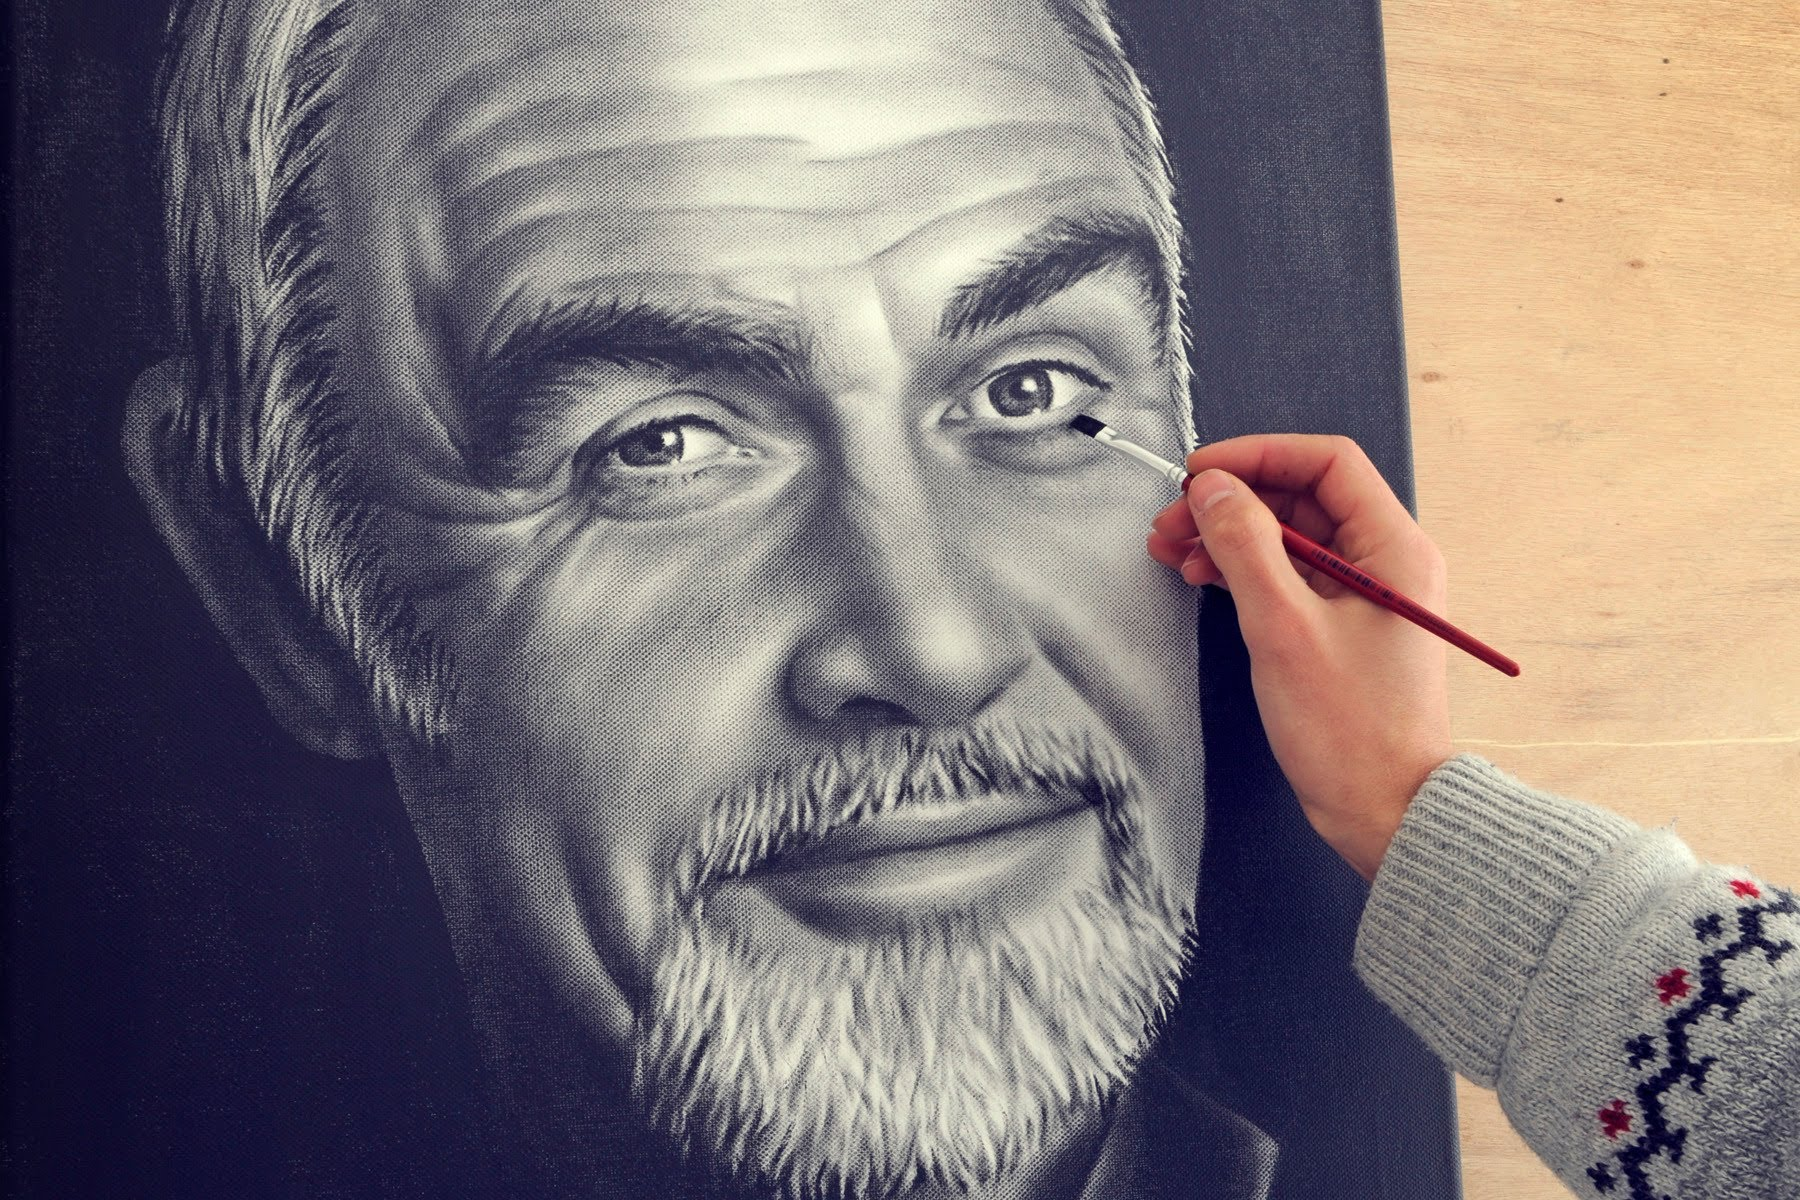 Drawn portrait dry brush To Paint) drawing (How speed